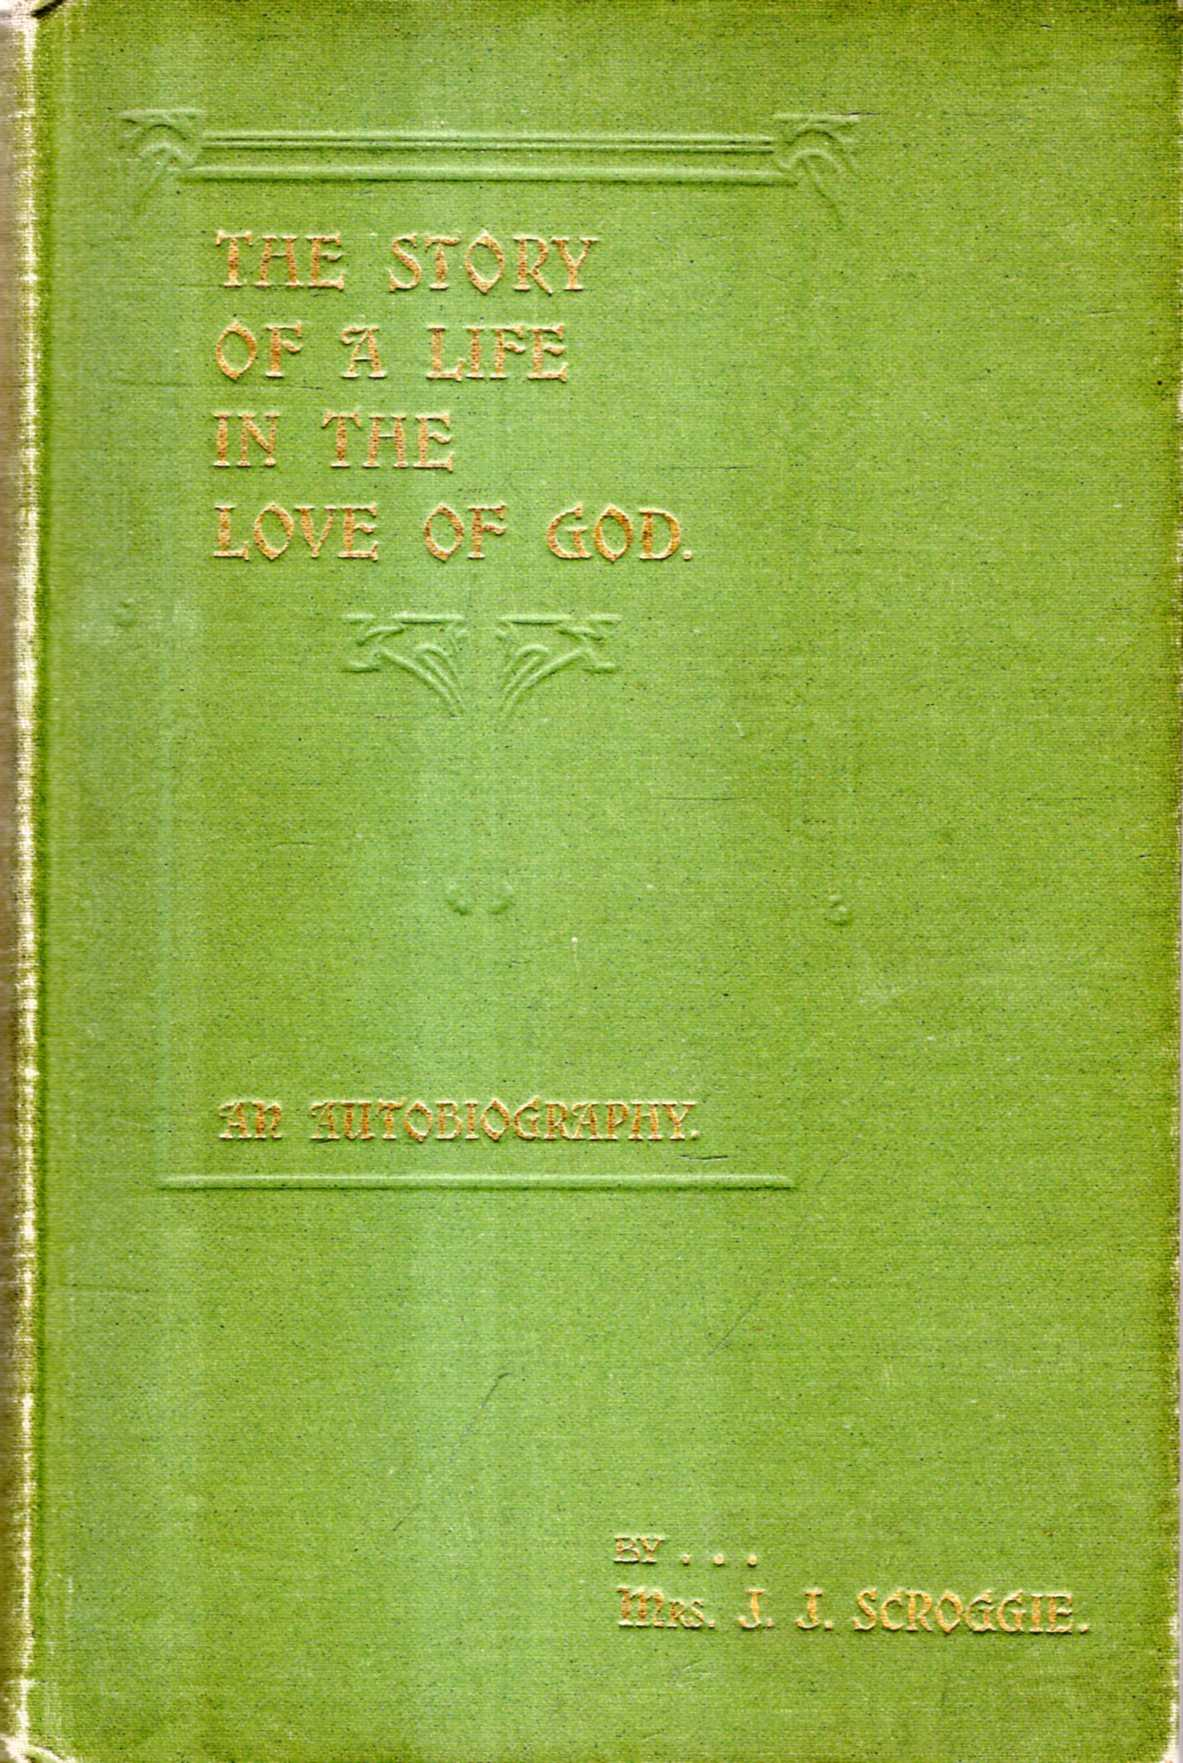 Image for The Story of a Love of God : An Autobiography